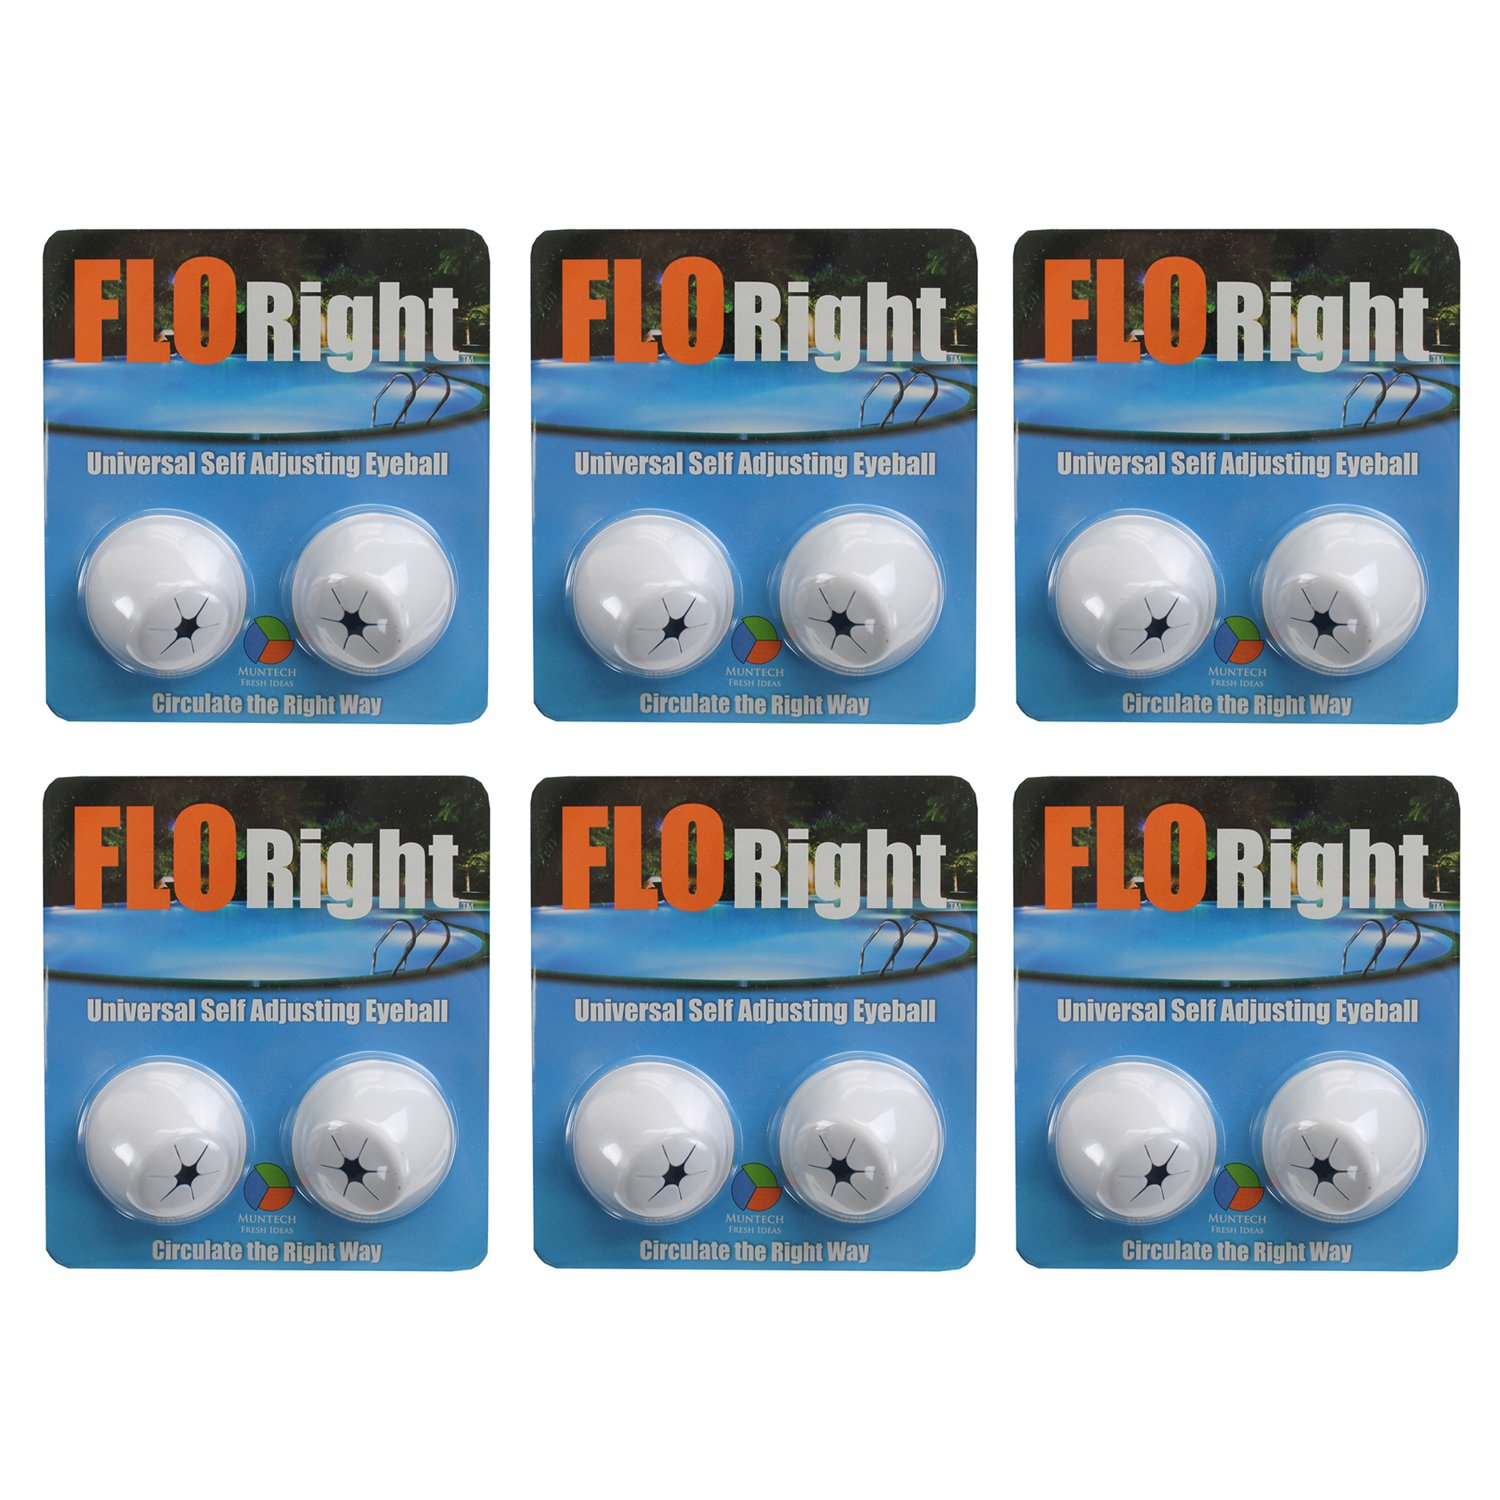 FLORight Pool Universal Self Adjusting Eyeball Replacement Circulation (6 Pack)